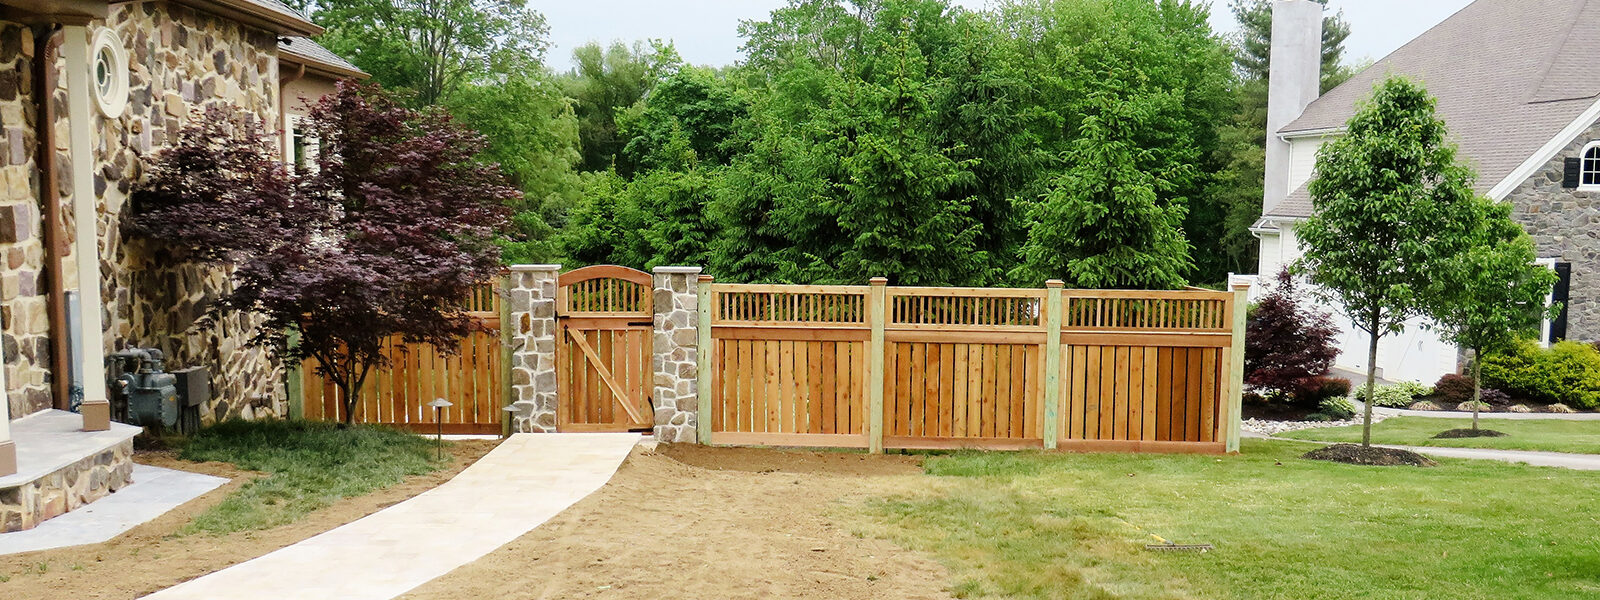 wooden fence with arched gate